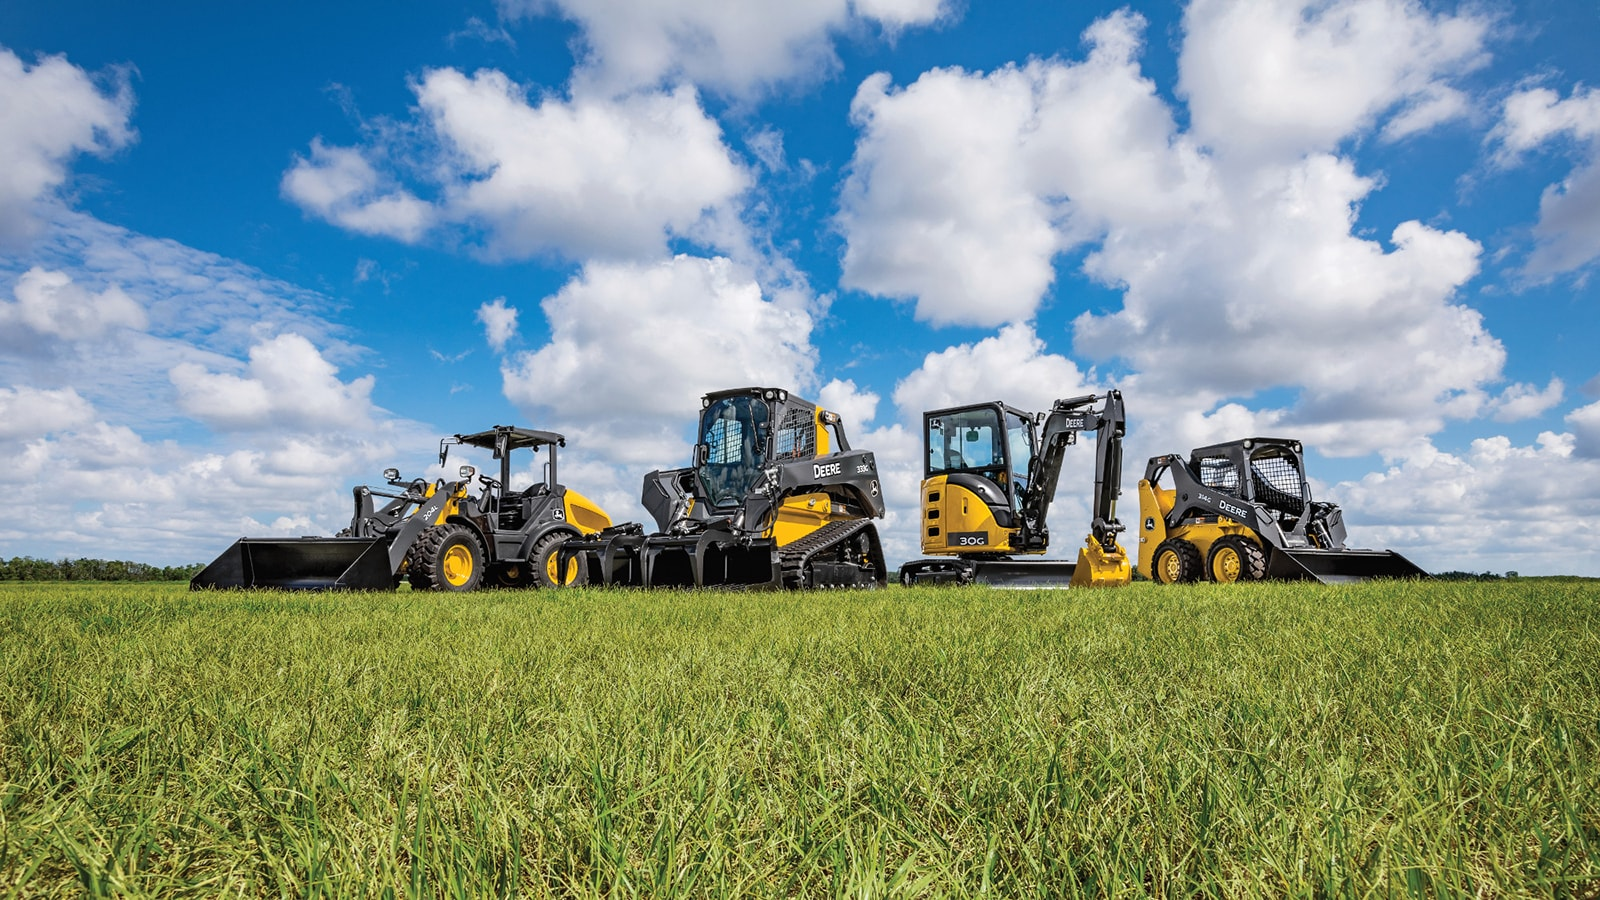 204L compact loader, 333G tracked skid steer, 30g mini excavator and 314G wheeled skid steer parked in a green grassy field with blue sky with white clouds in the background